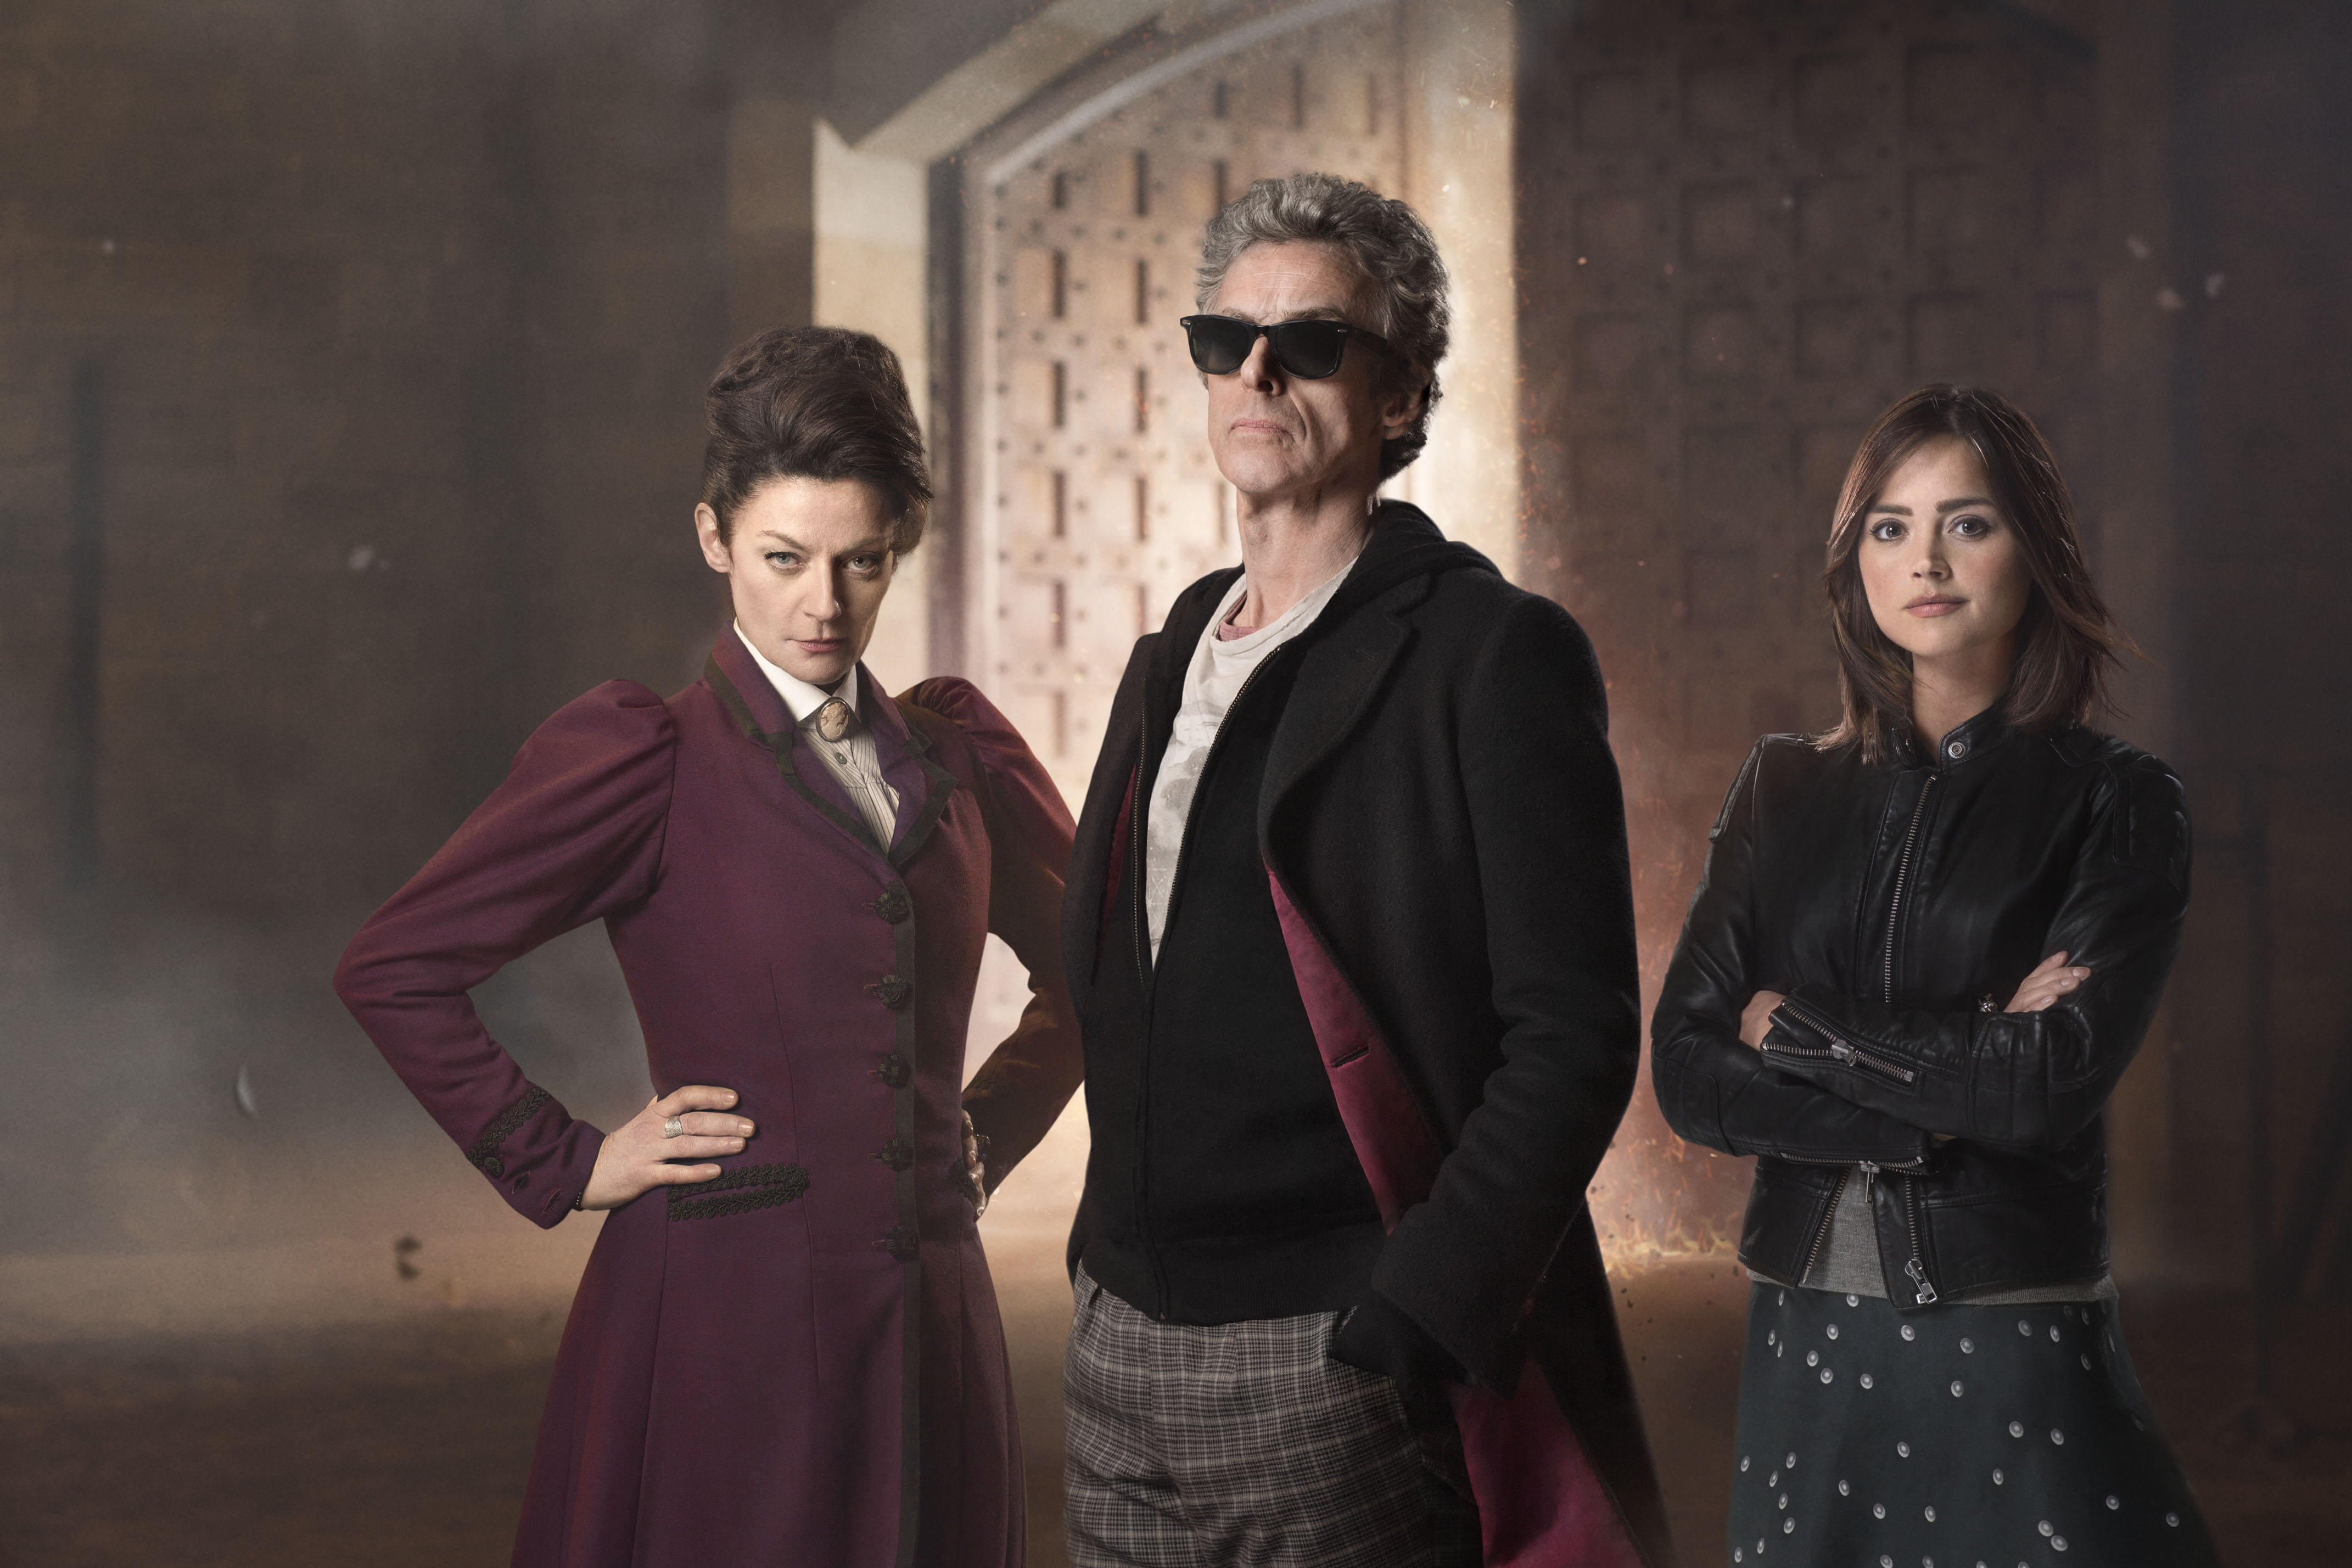 Peter Capaldi, Jenna Coleman, Michelle Gomez - Doctor Who